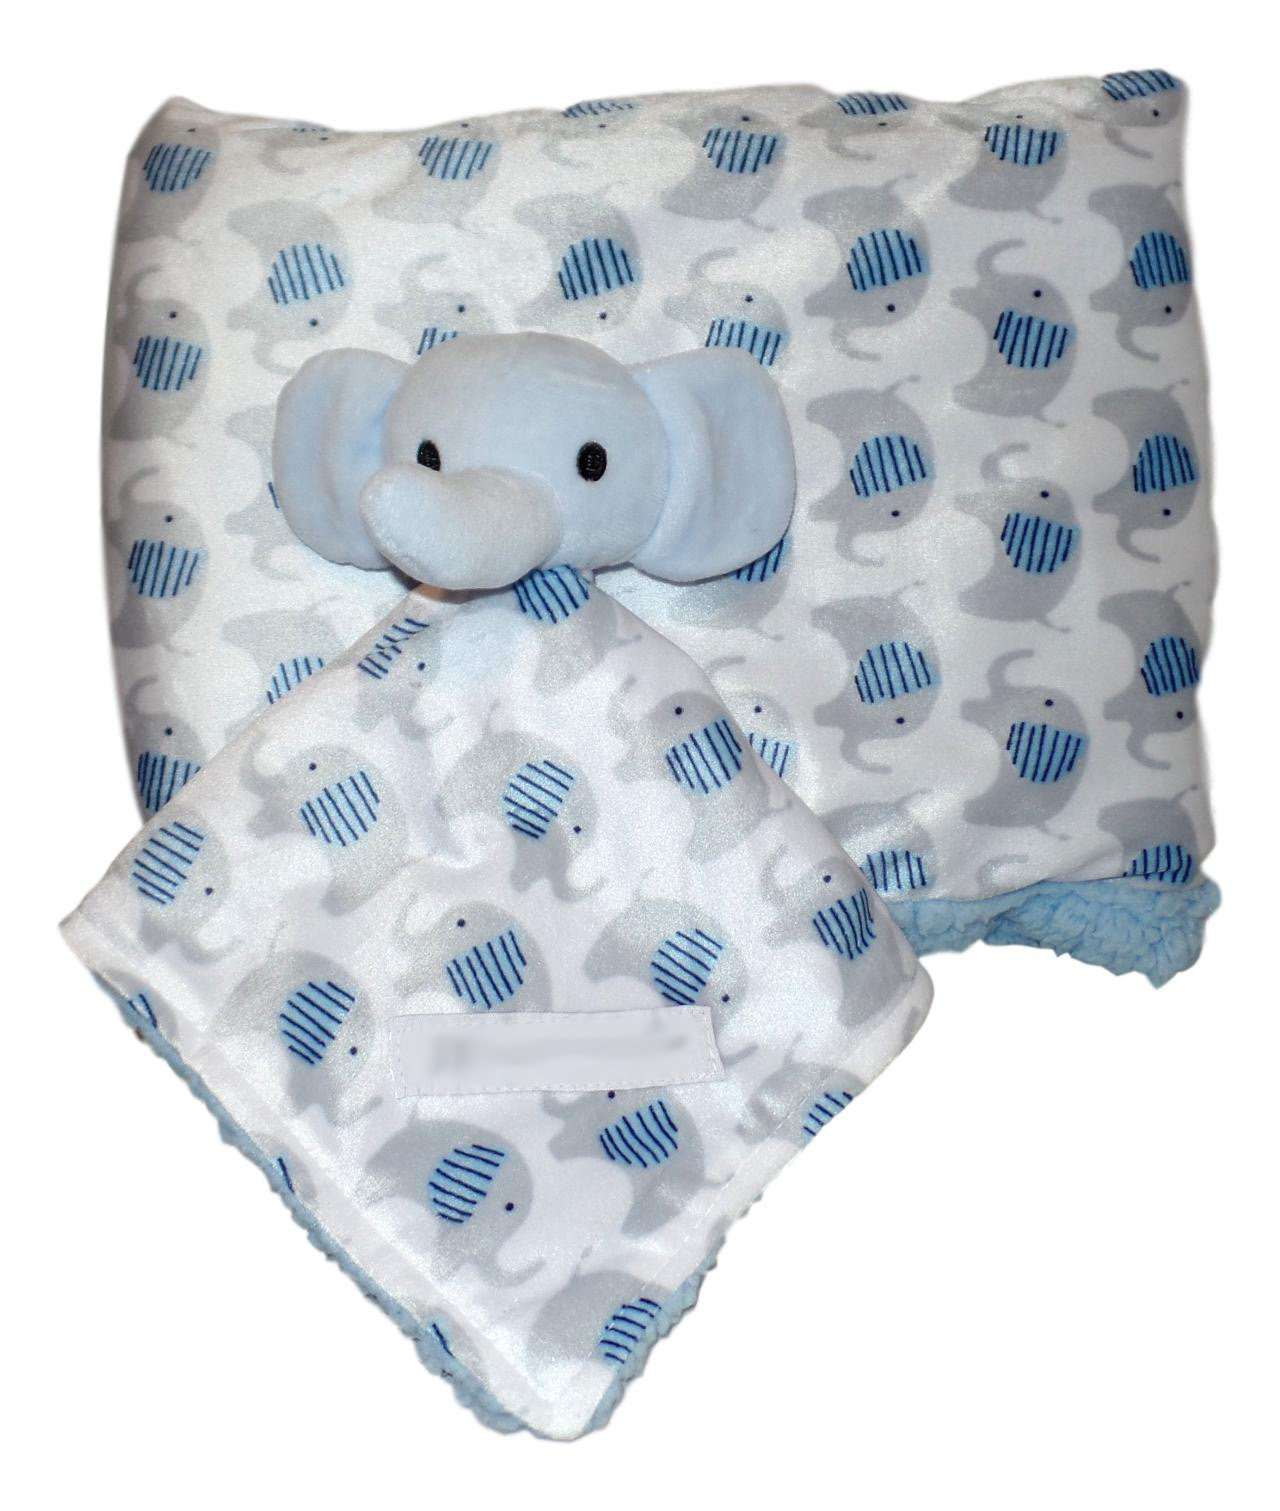 Plush Custom Embroidery Name Baby Blanket (30 x 40 inch) With Lovey Blanket - Excellent Gift Idea (Blank Blue Elephant) by A Small Love (Image #1)